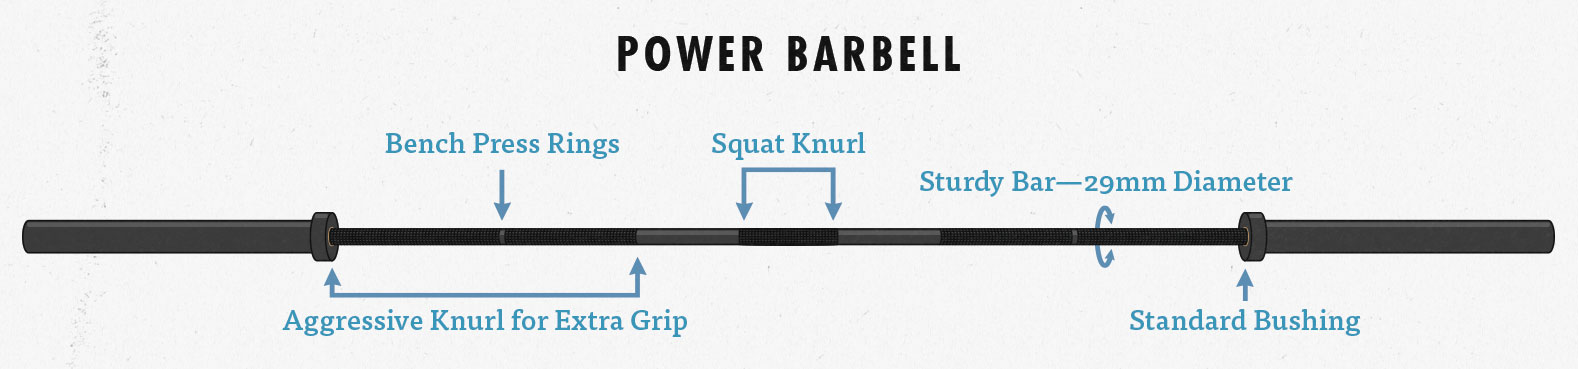 Power Barbell Diagram: aggressive knurling, squat knurl, bench press rings, 29mm barbell diameter, standard barbell bushing